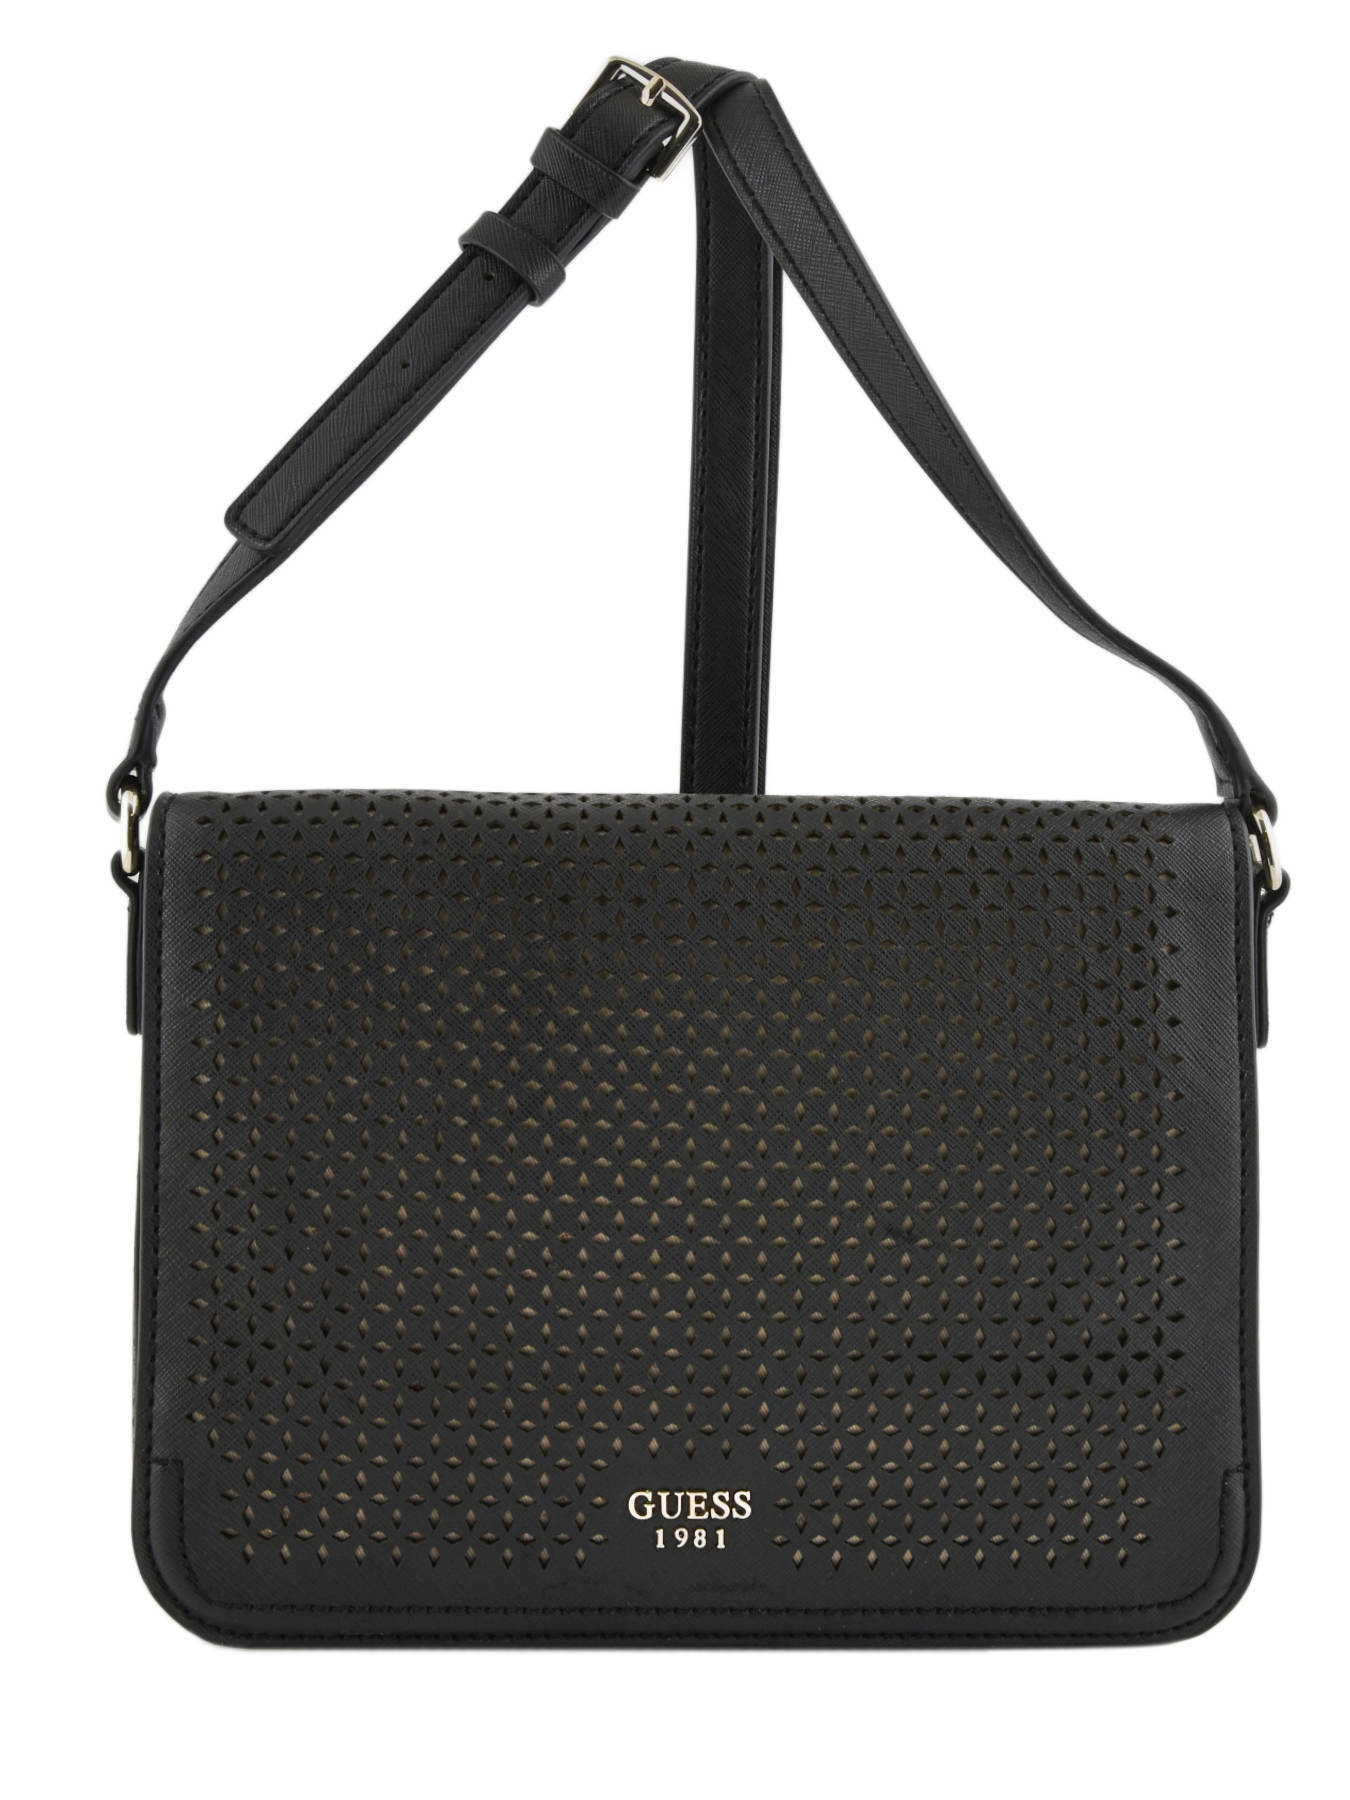 Guess Bag Kamryn - Best Prices